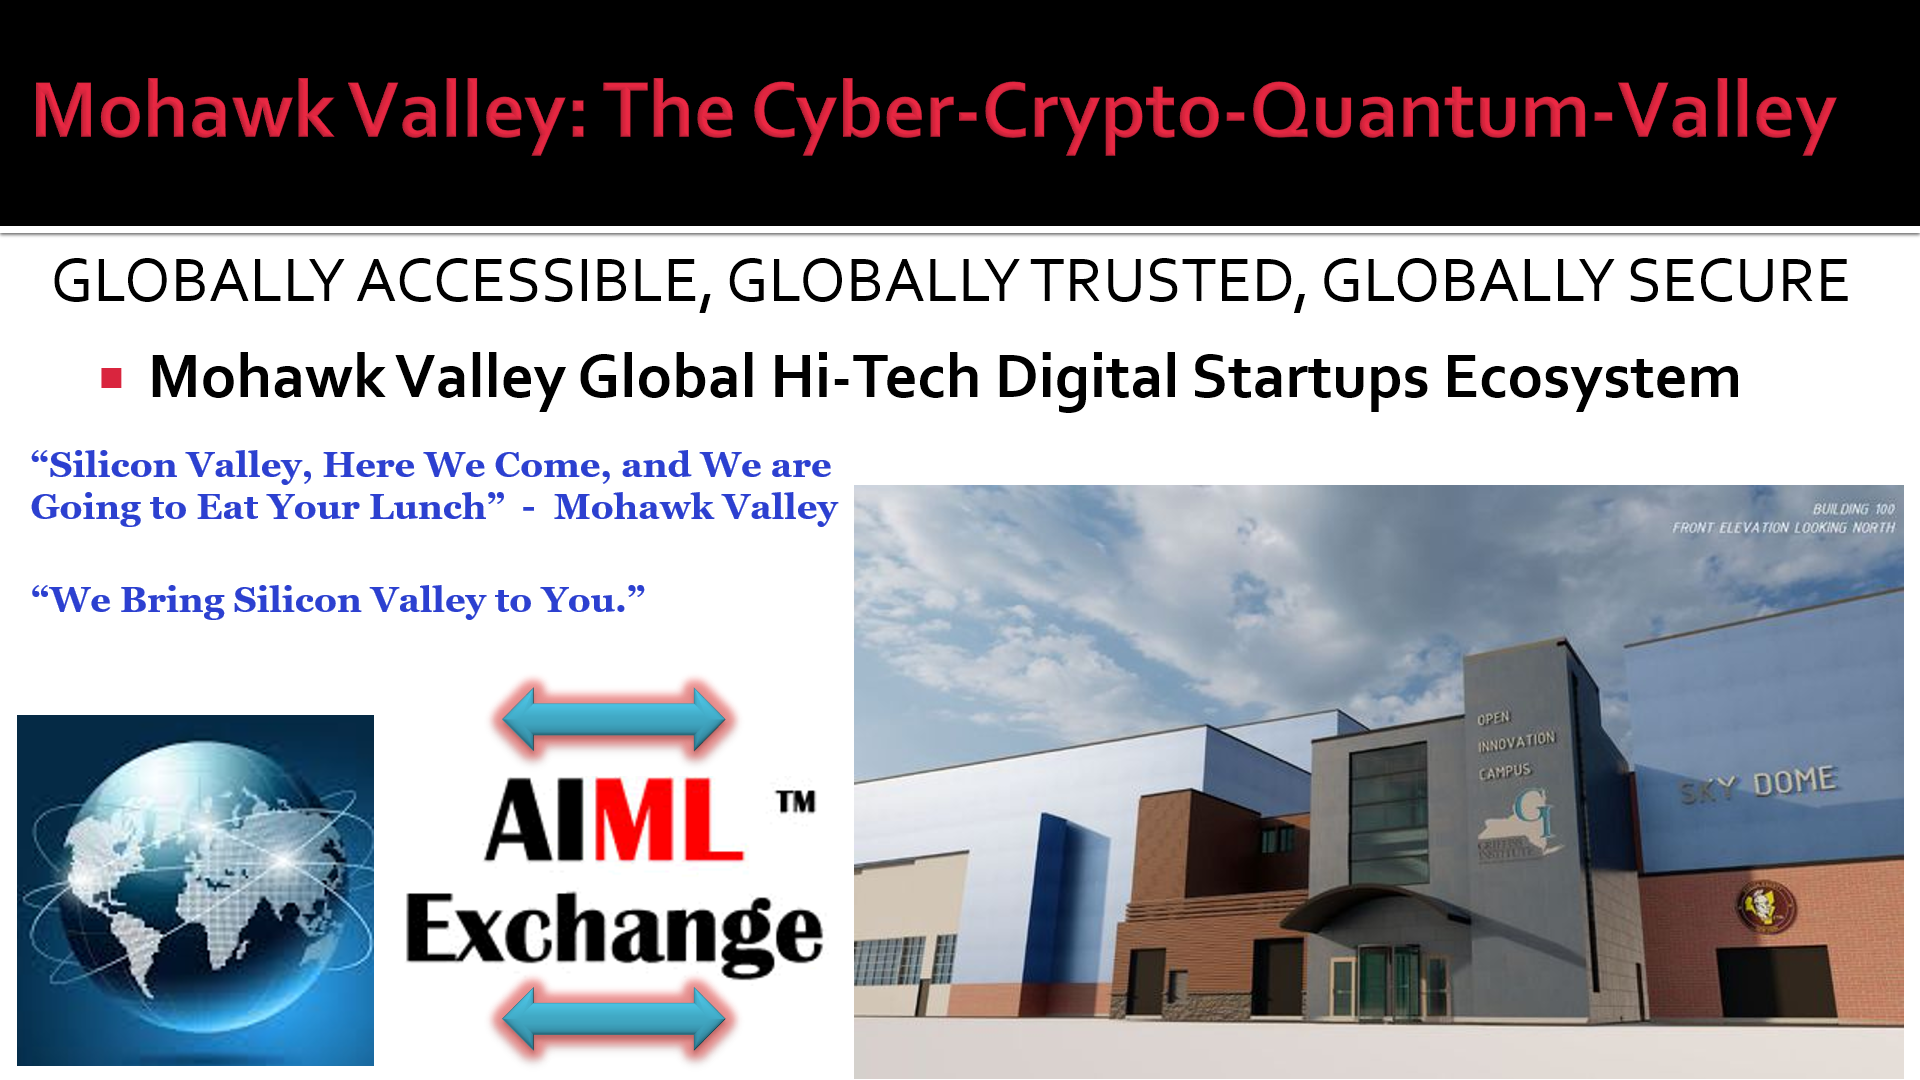 AIMLExchange™: AFRL Open Innovation Center: Mohawk Valley: The Cyber-Crypto-Quantum-Valley